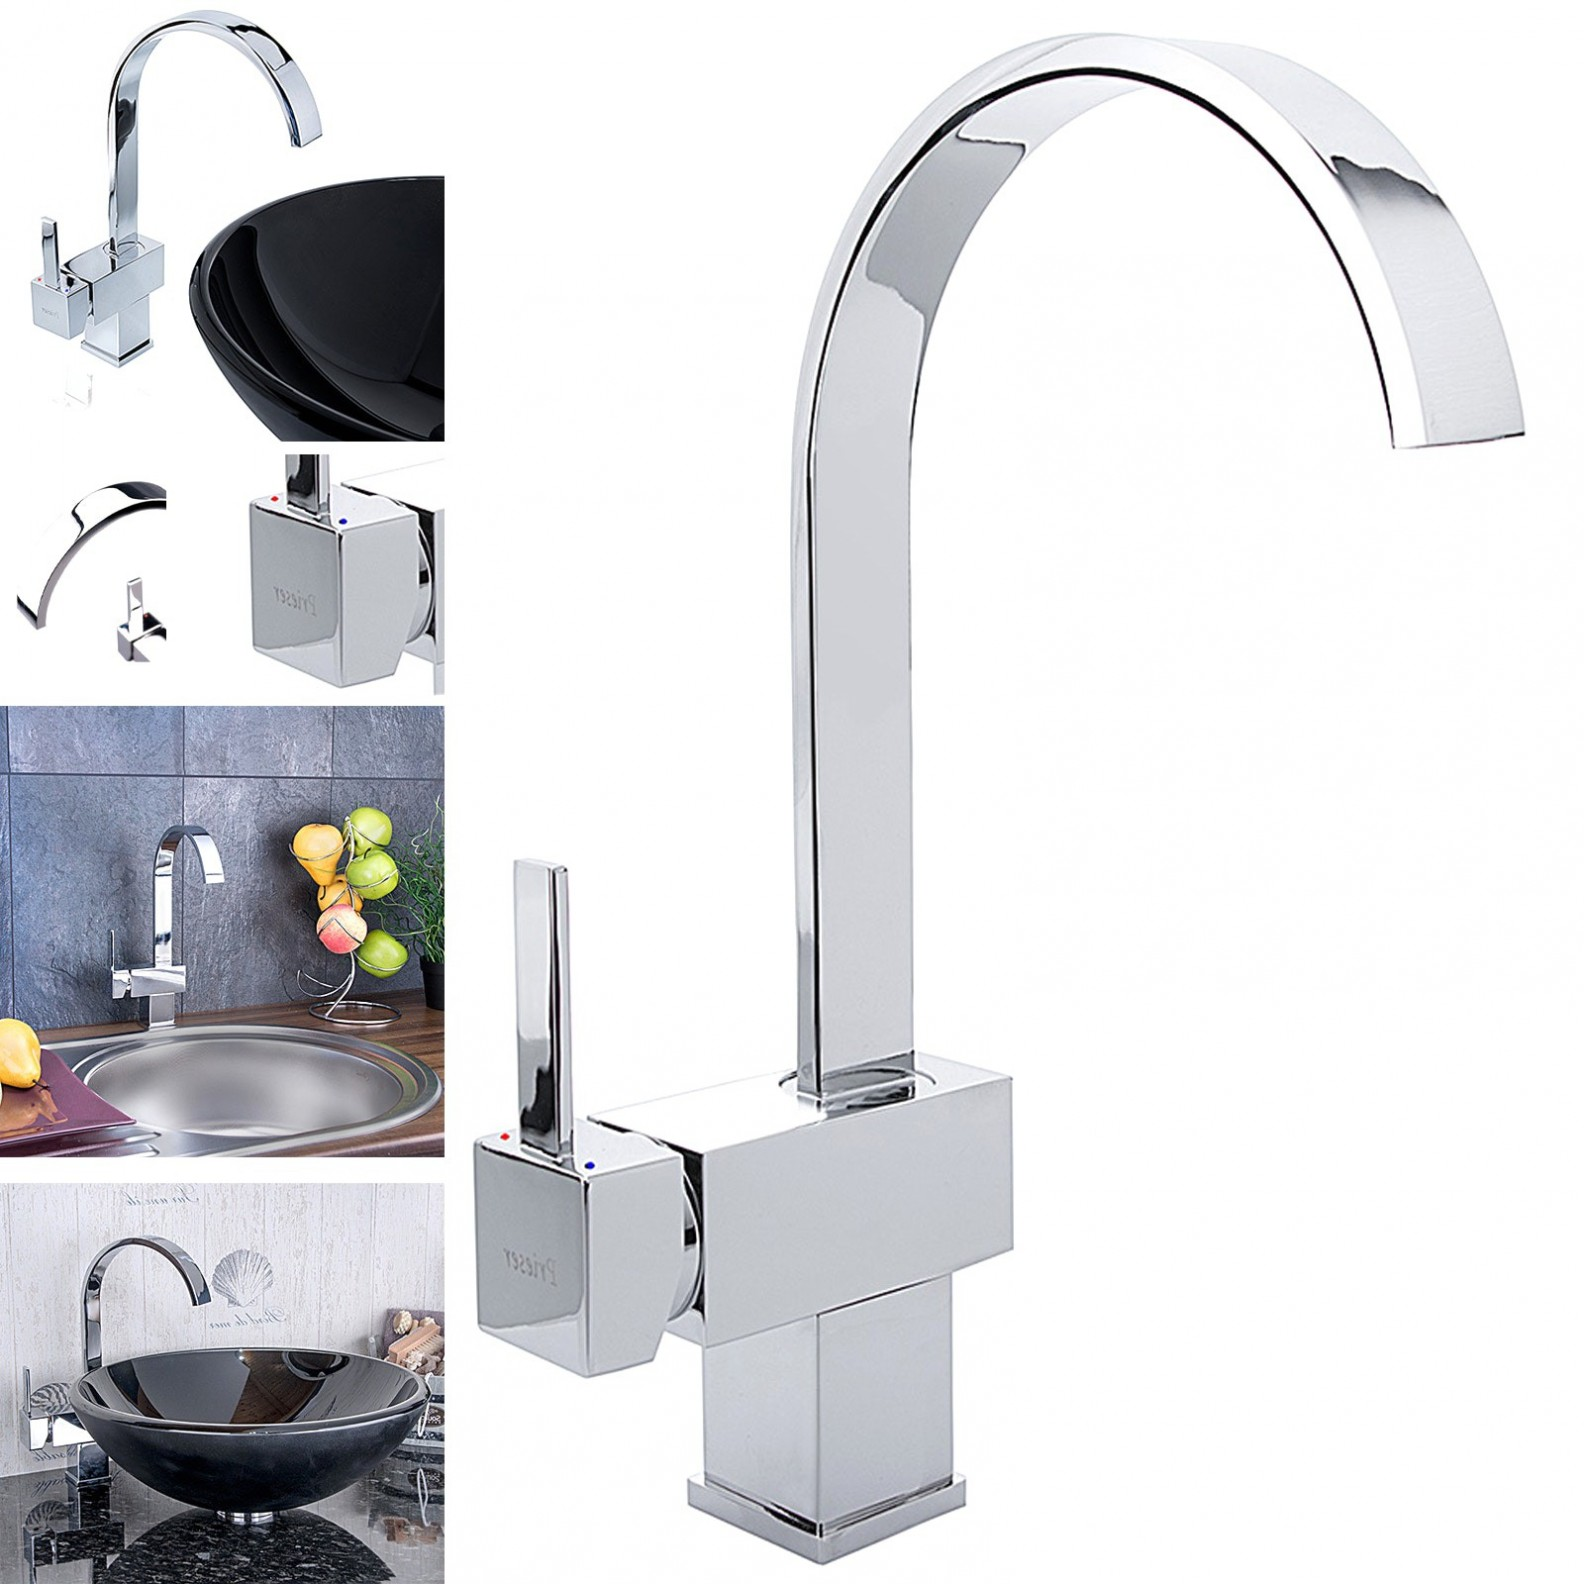 Badezimmer Accessoires Grohe Grohe Armaturen Bad Affordable Grohe Costa Aufputz Chrom With